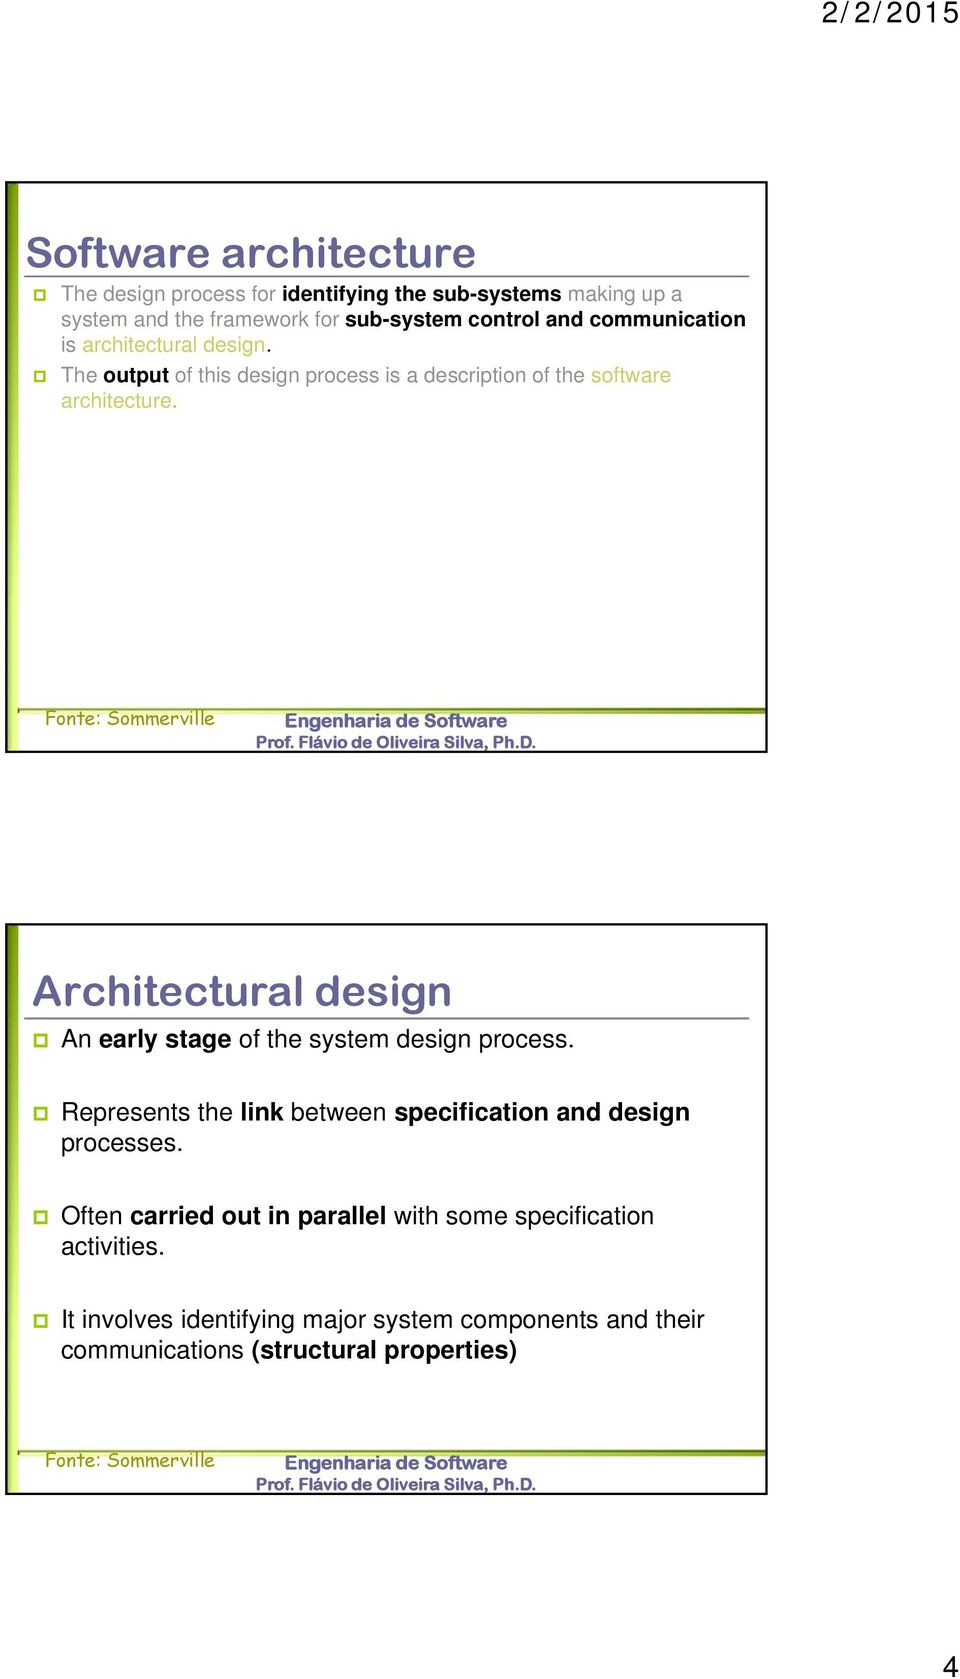 Fonte: Sommerville Architectural design An early stage of the system design process. Represents the link between specification and design processes.